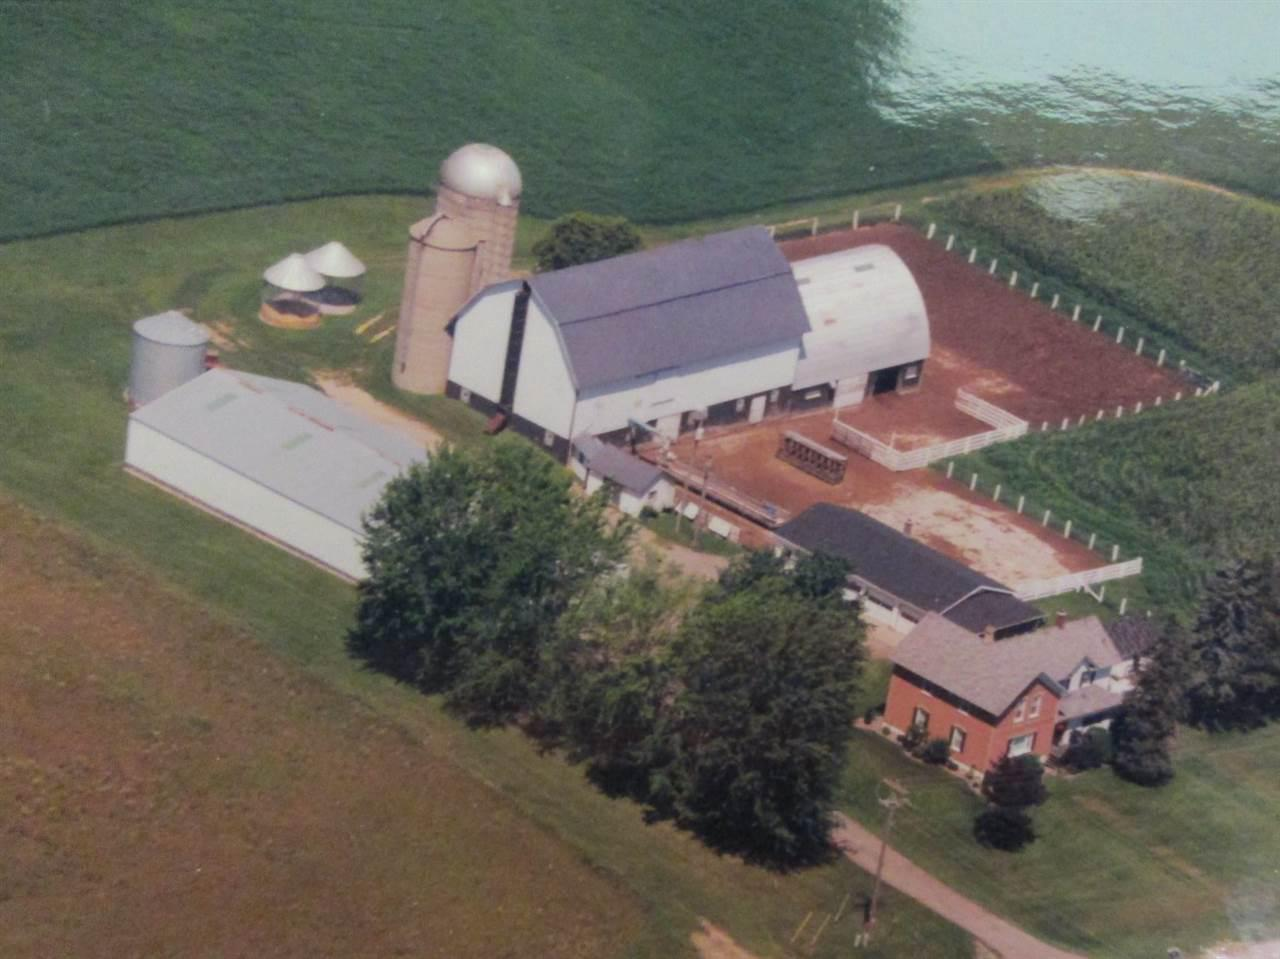 Rare find - 6 acre  Zoned agricultural or commercial.  Large 5 bedroom country home, with 10' x 11' sitting room and a finished basement.  45' x 112' steel pole building, 40' x 80' barn with 40' x 50' addition, 2 corn cribs, grain bin, 2 silos, milk house, tool shed, 36' x 52' four-car garage, with 10' x 26' screened patio.  More land is available.  Great opportunity to live where you have a business, or farm it.